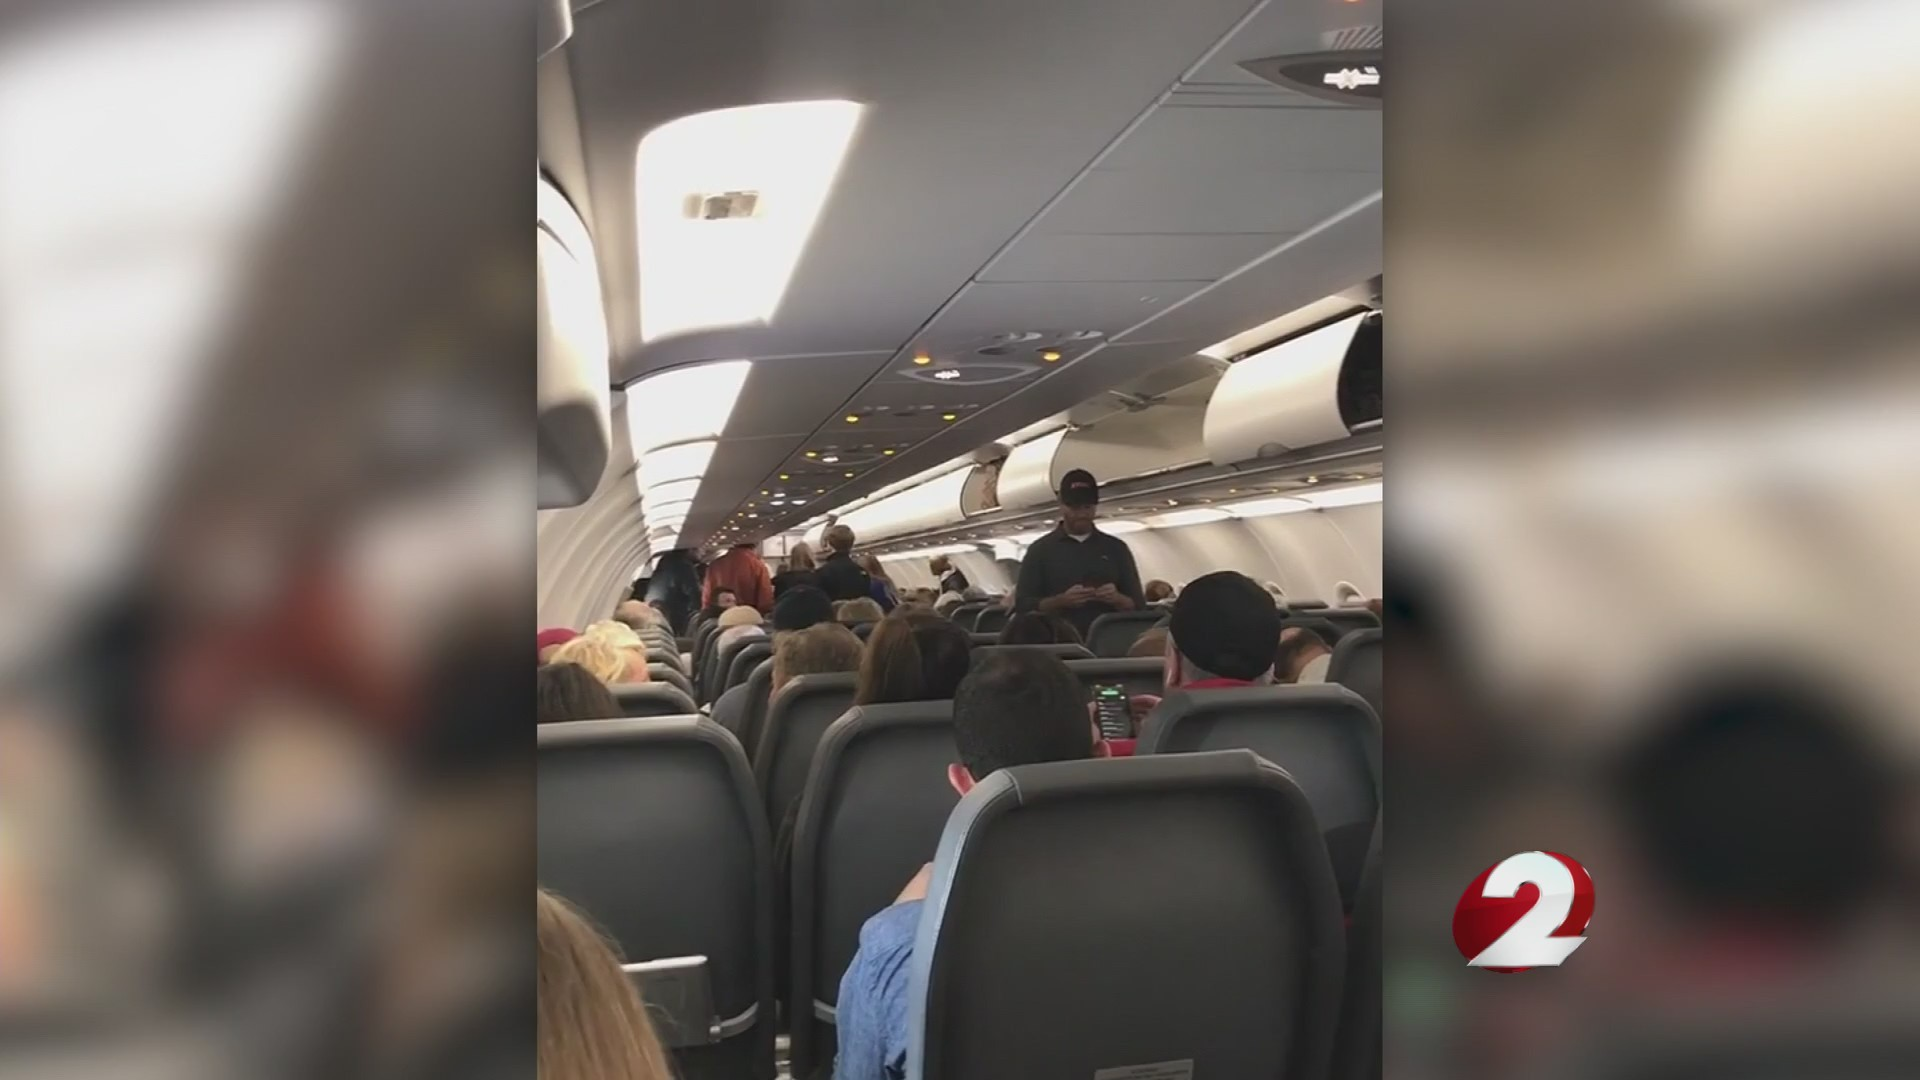 6 passengers fall ill on flight from Cleveland to Tampa